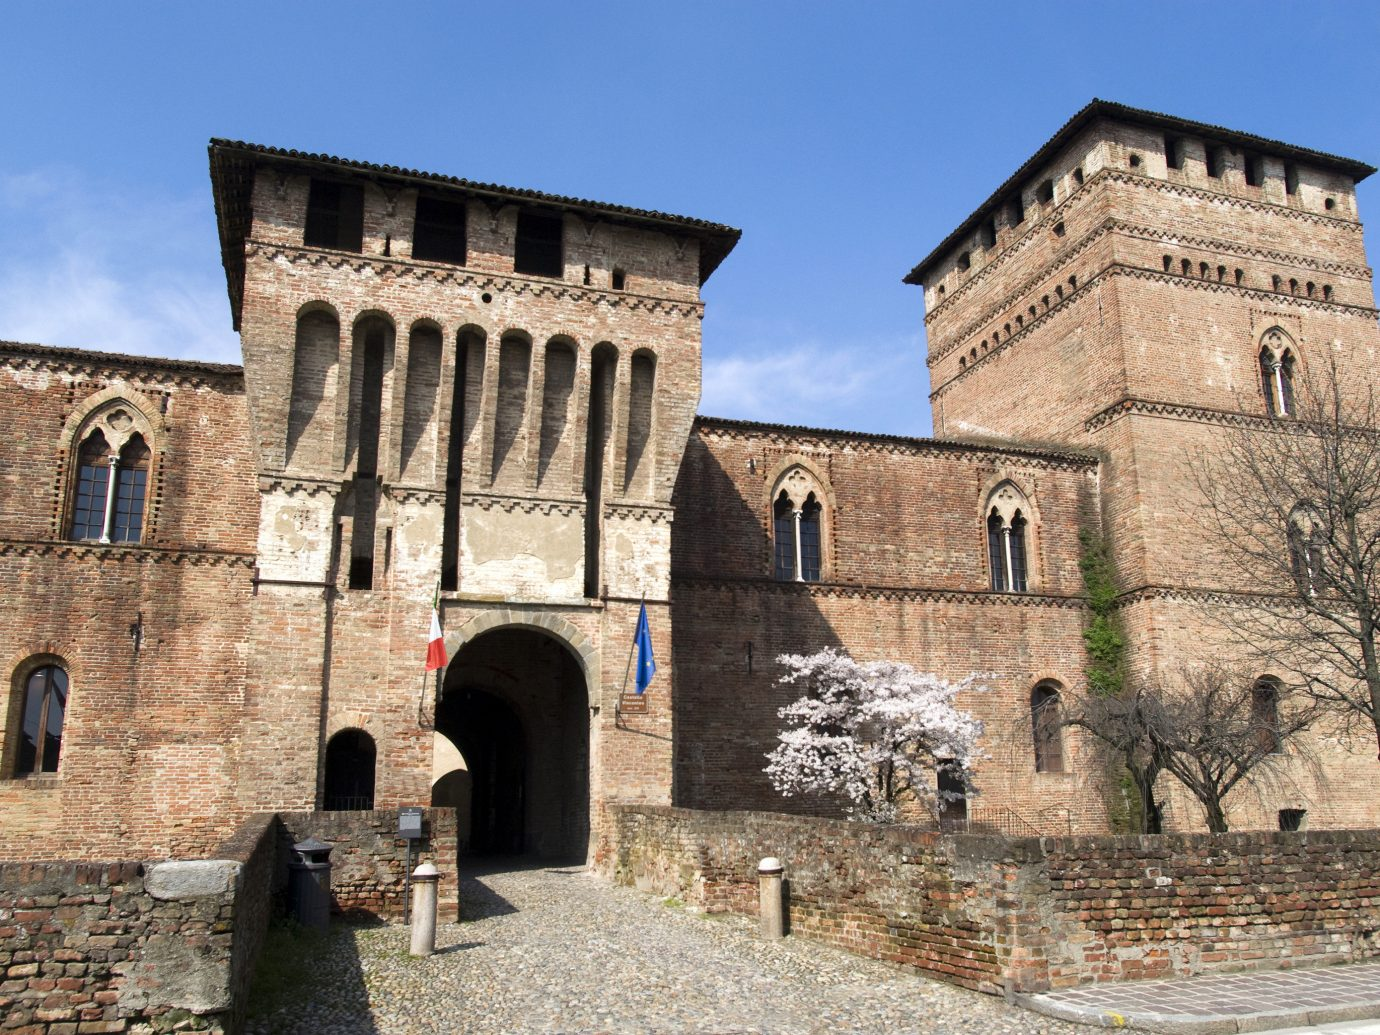 Arts + Culture Italy Milan Trip Ideas historic site medieval architecture building wall history fortification arch sky ancient history castle facade middle ages palace château